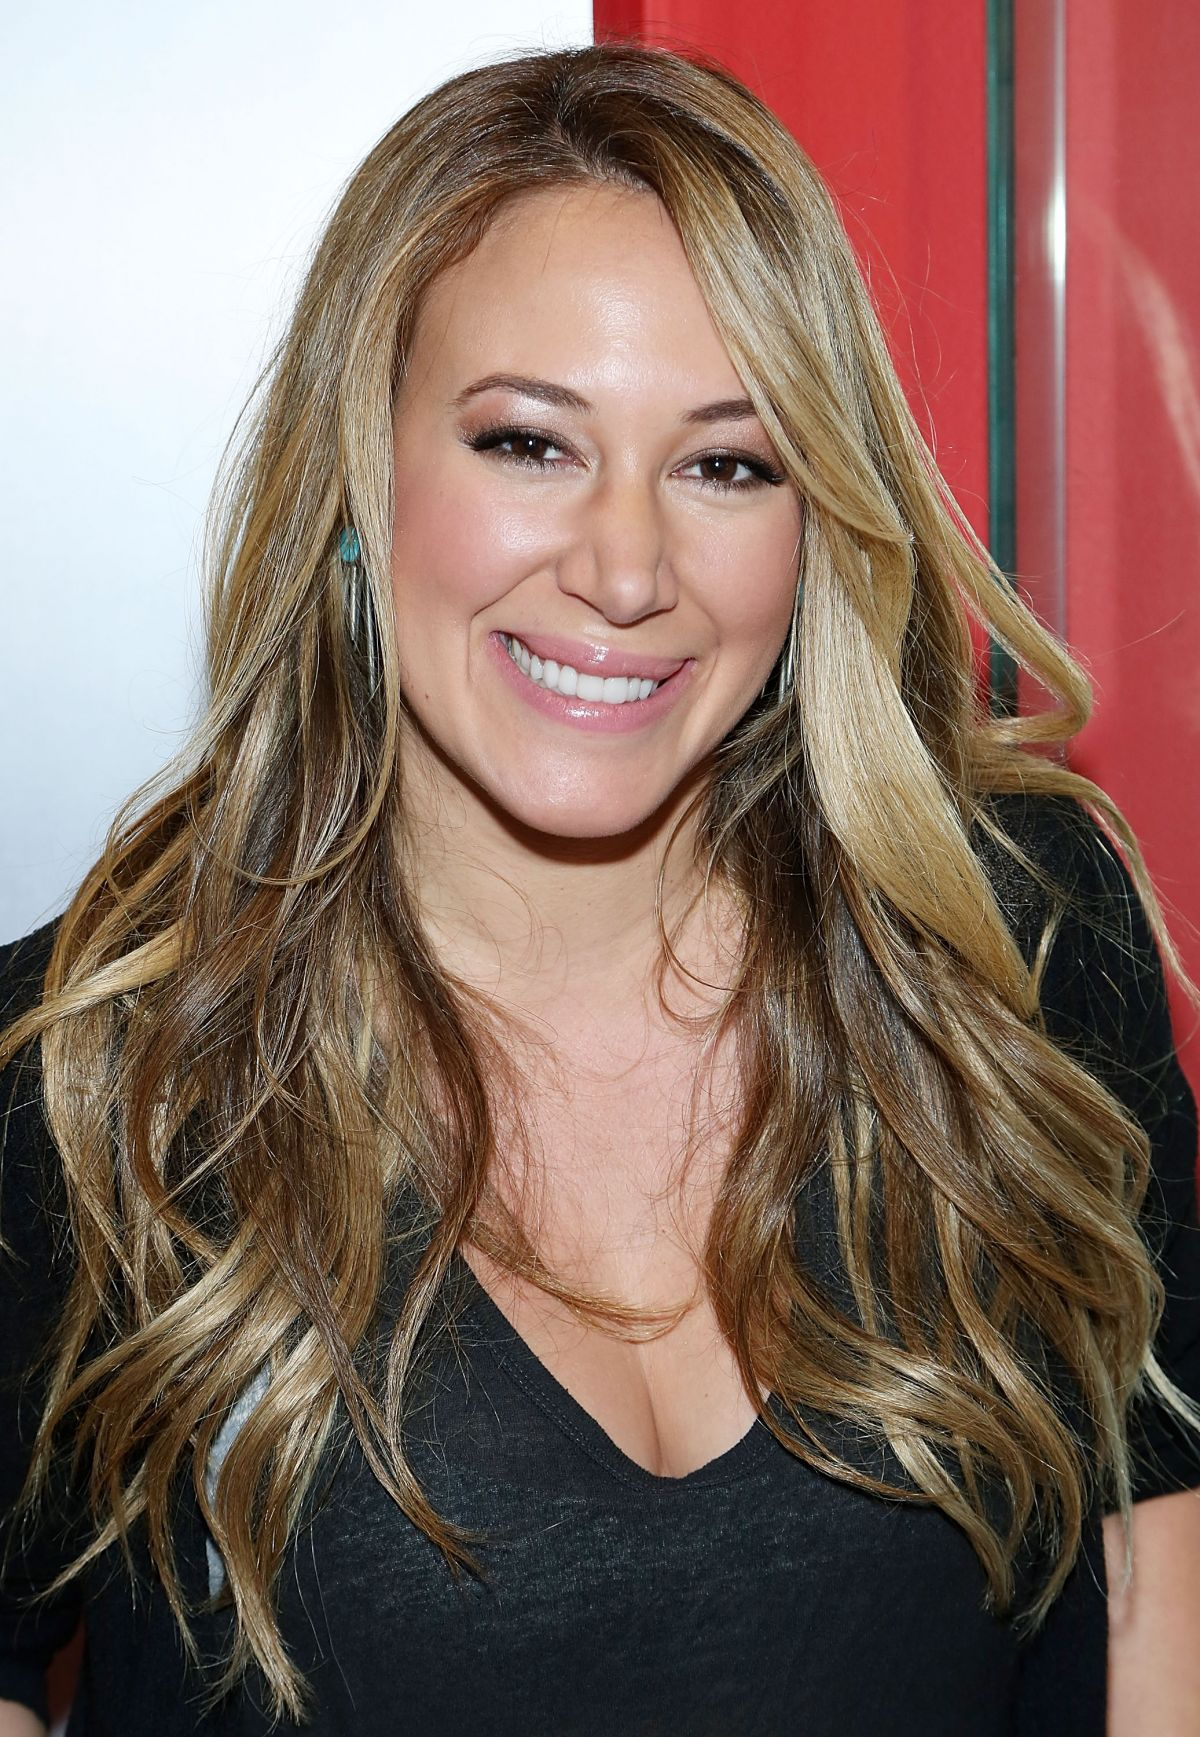 Haylie Duff Wallpapers High Quality Download Free